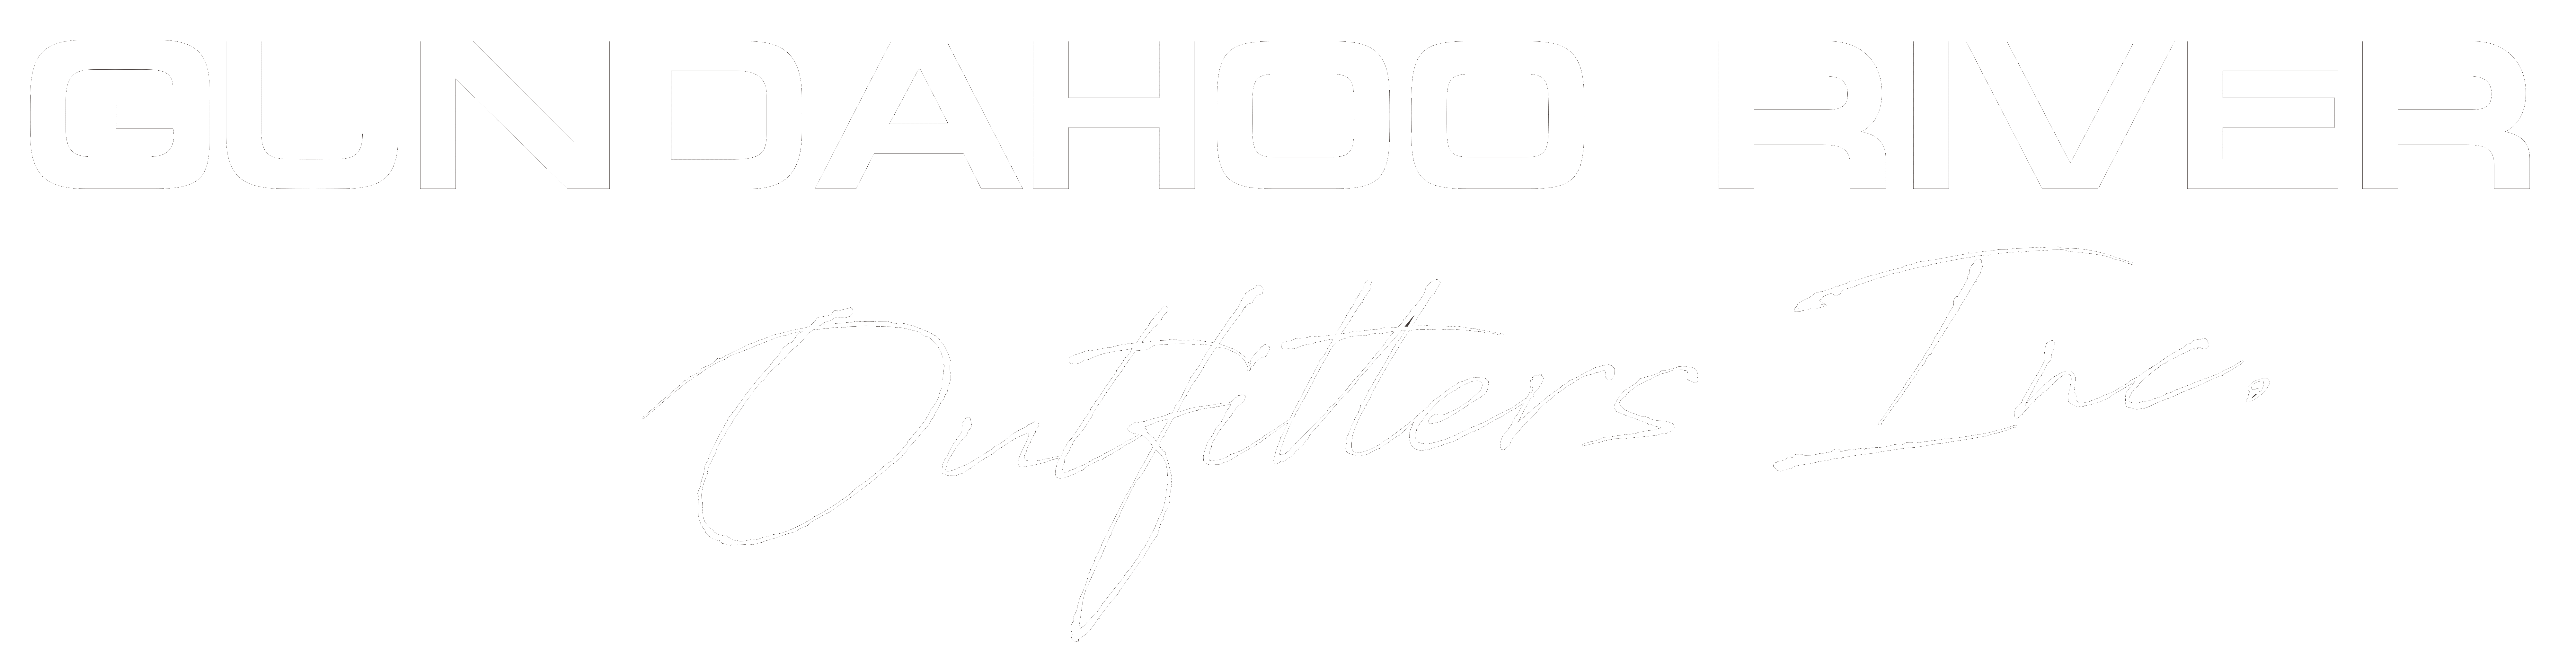 Gundahoo River Outfitters Inc.